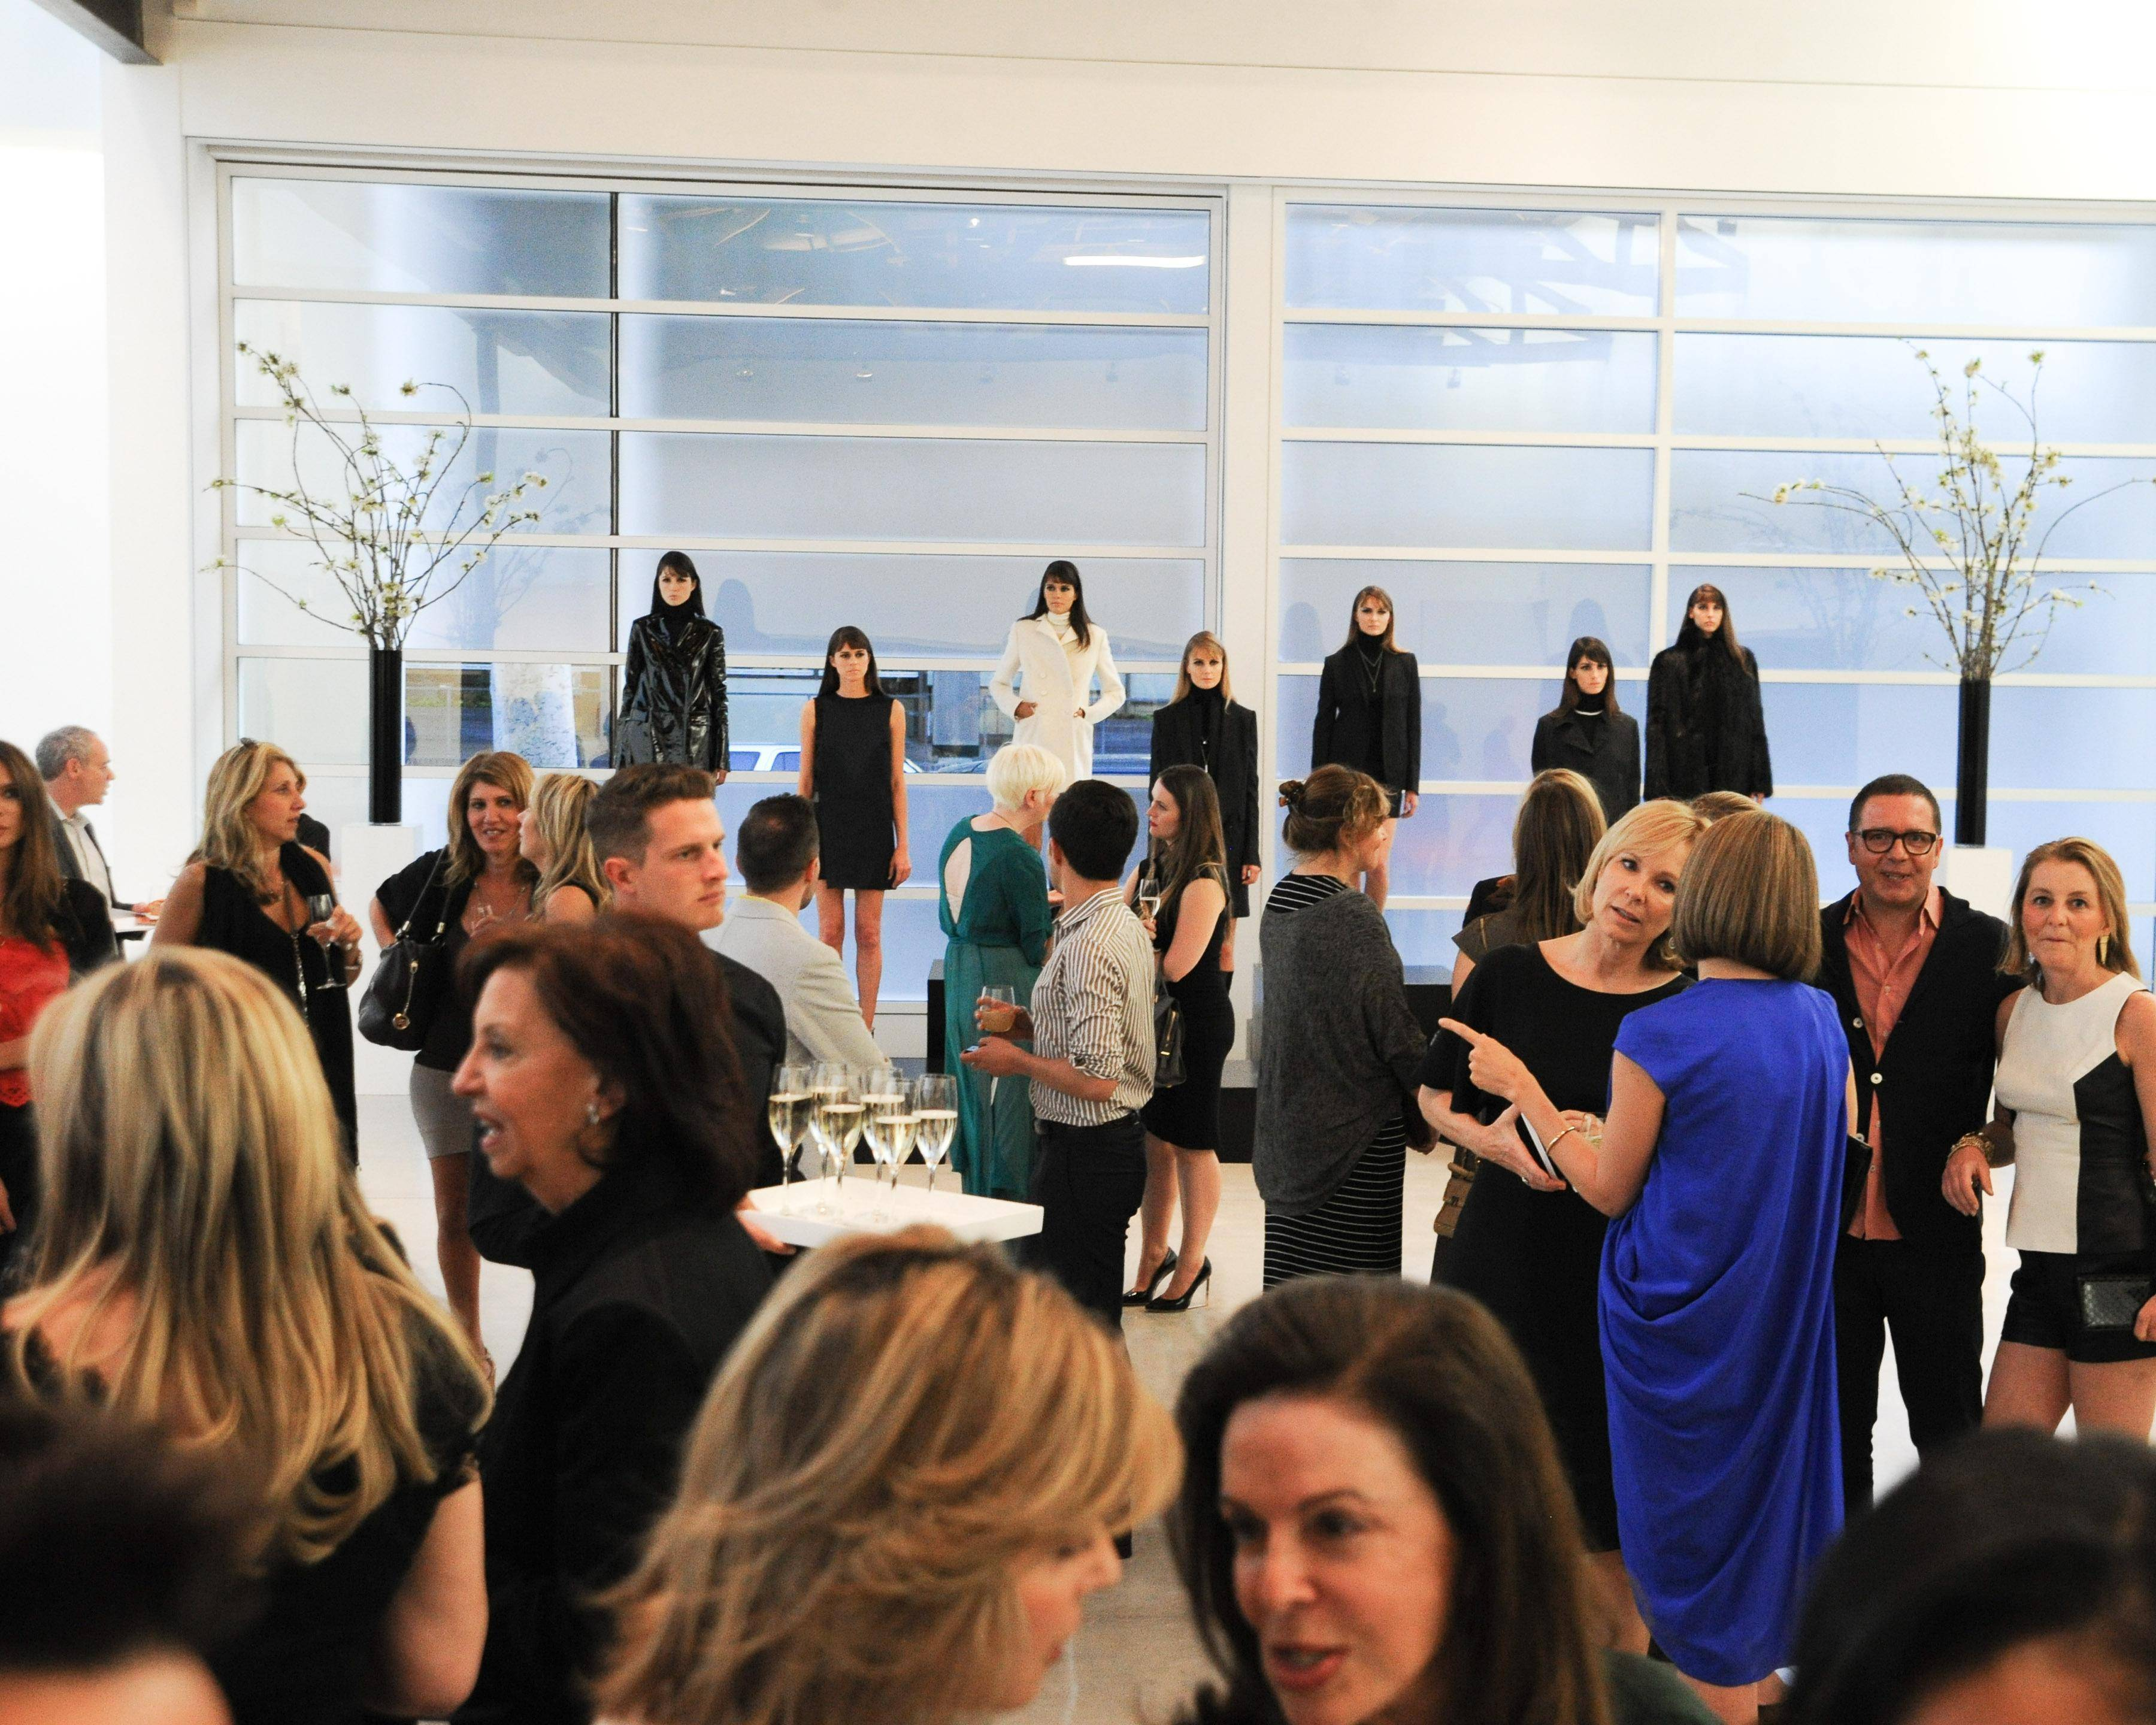 FERRAGAMO Hosts Cocktails to Announce the Inaugural Opening Gala for the WALLIS ANNENBERG CENTER For The PERFORMING ARTS